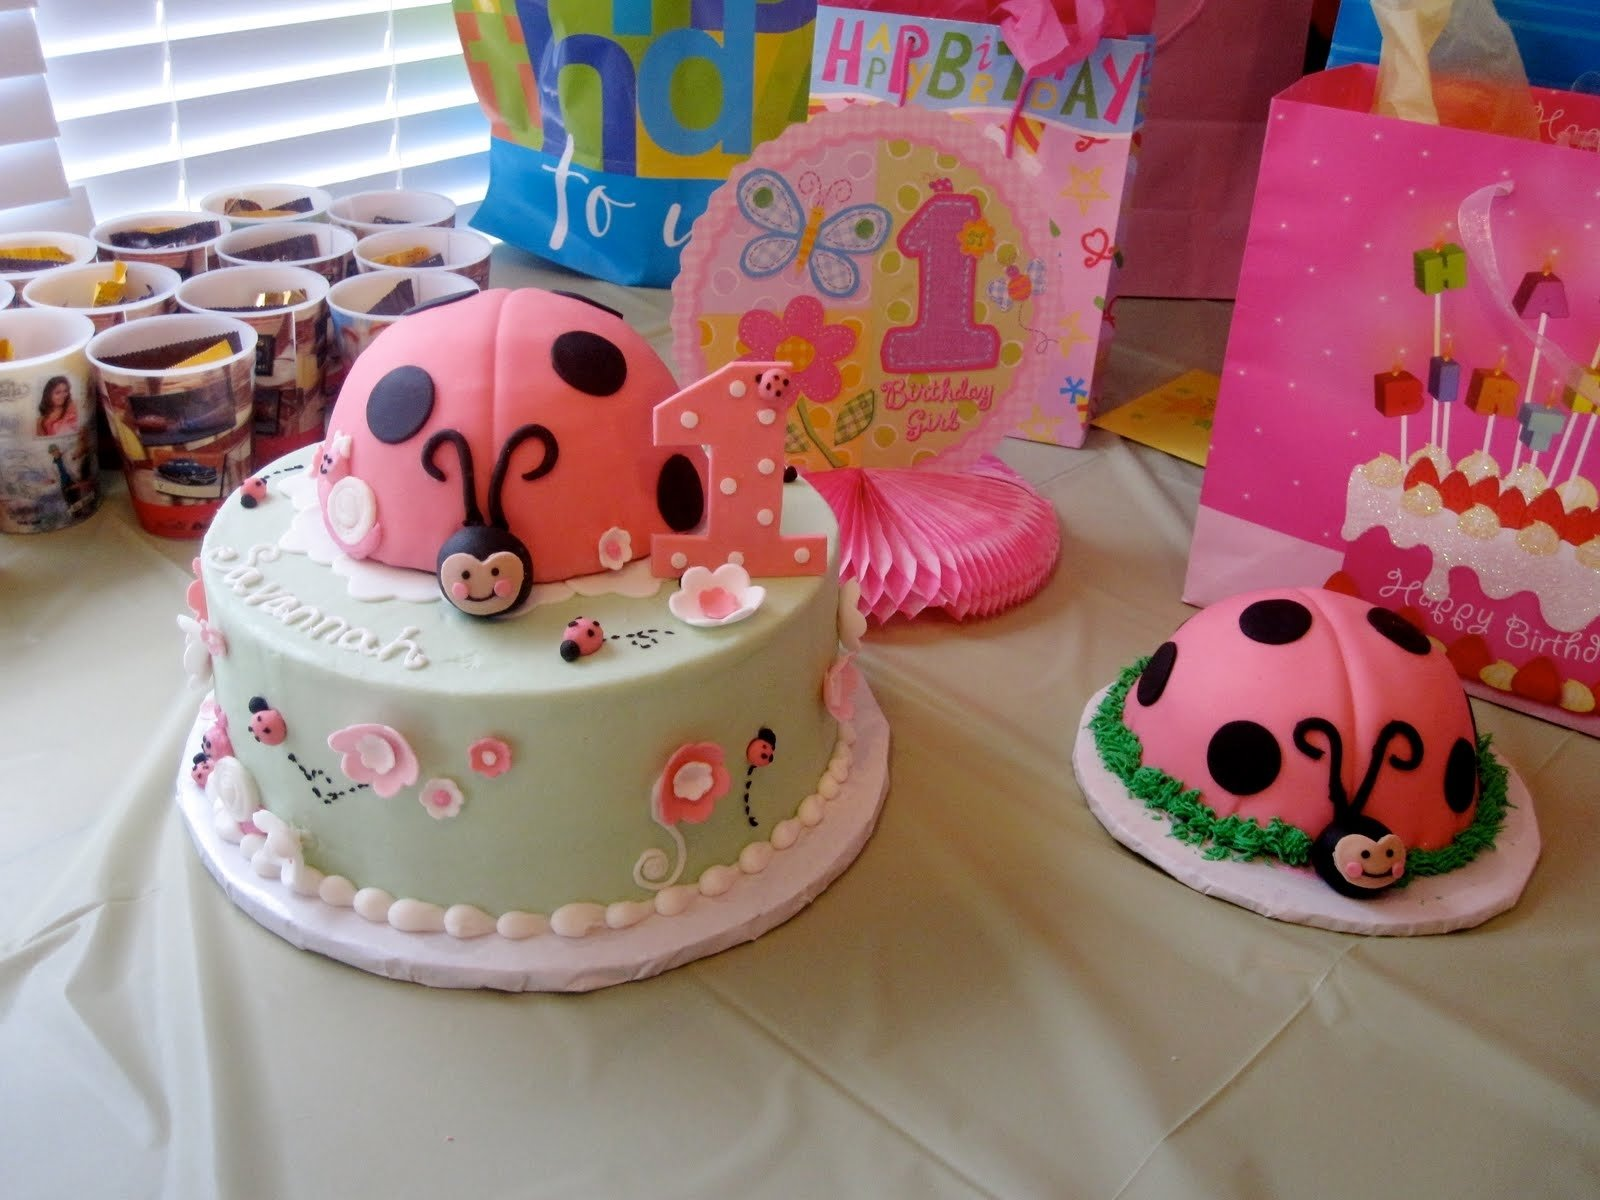 10 Fabulous 6 Year Old Birthday Ideas this would be so cute for paytons birthday holidays pinterest 1